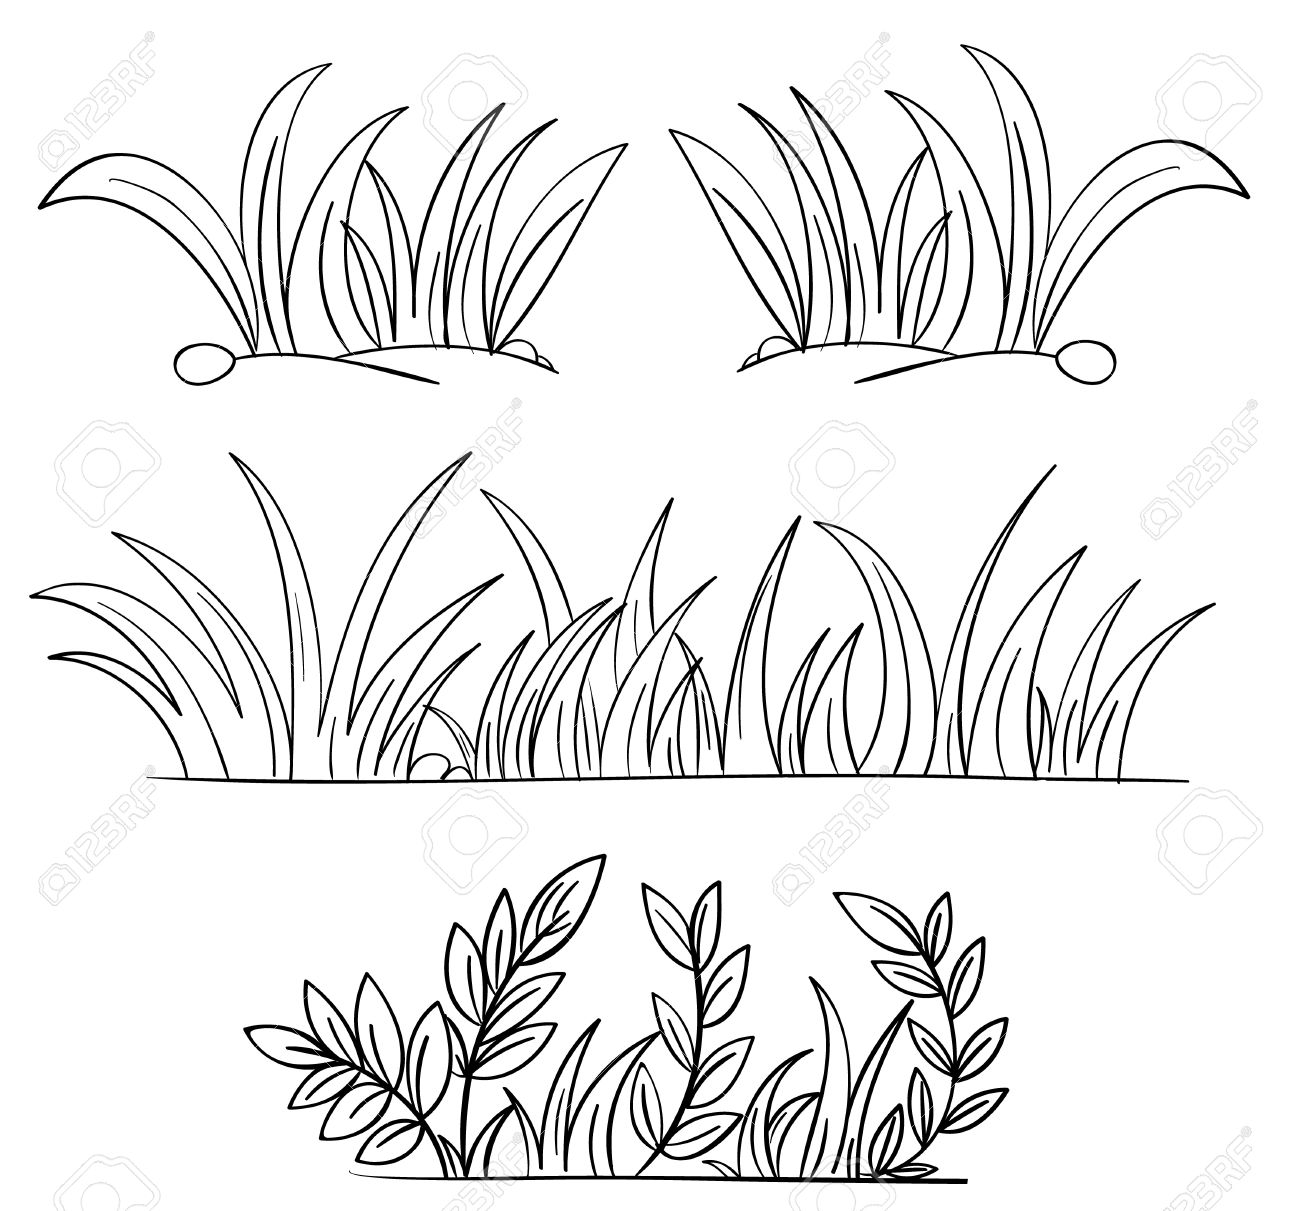 grass coloring page